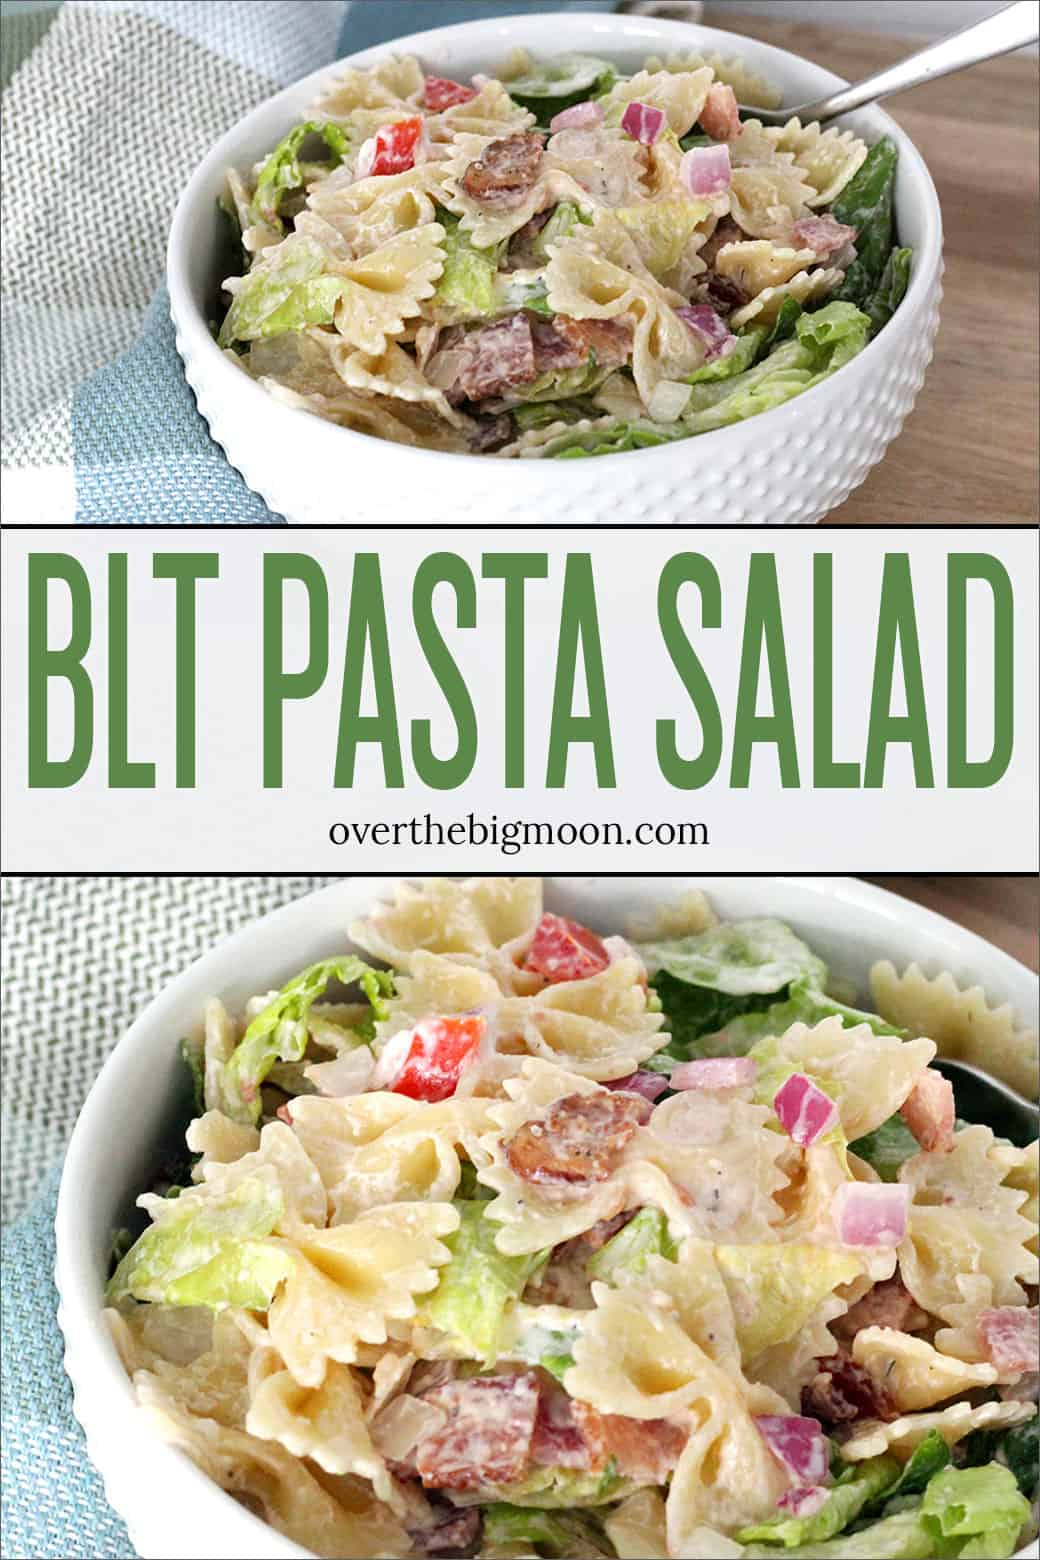 This BLT Pasta Salad is like a BLT Sandwich without the bread! It includes bacon, lettuce and tomato mixed in with bowtie noodles and lettuce topped with creamy ranch dressing. From overthebigmoon.com!